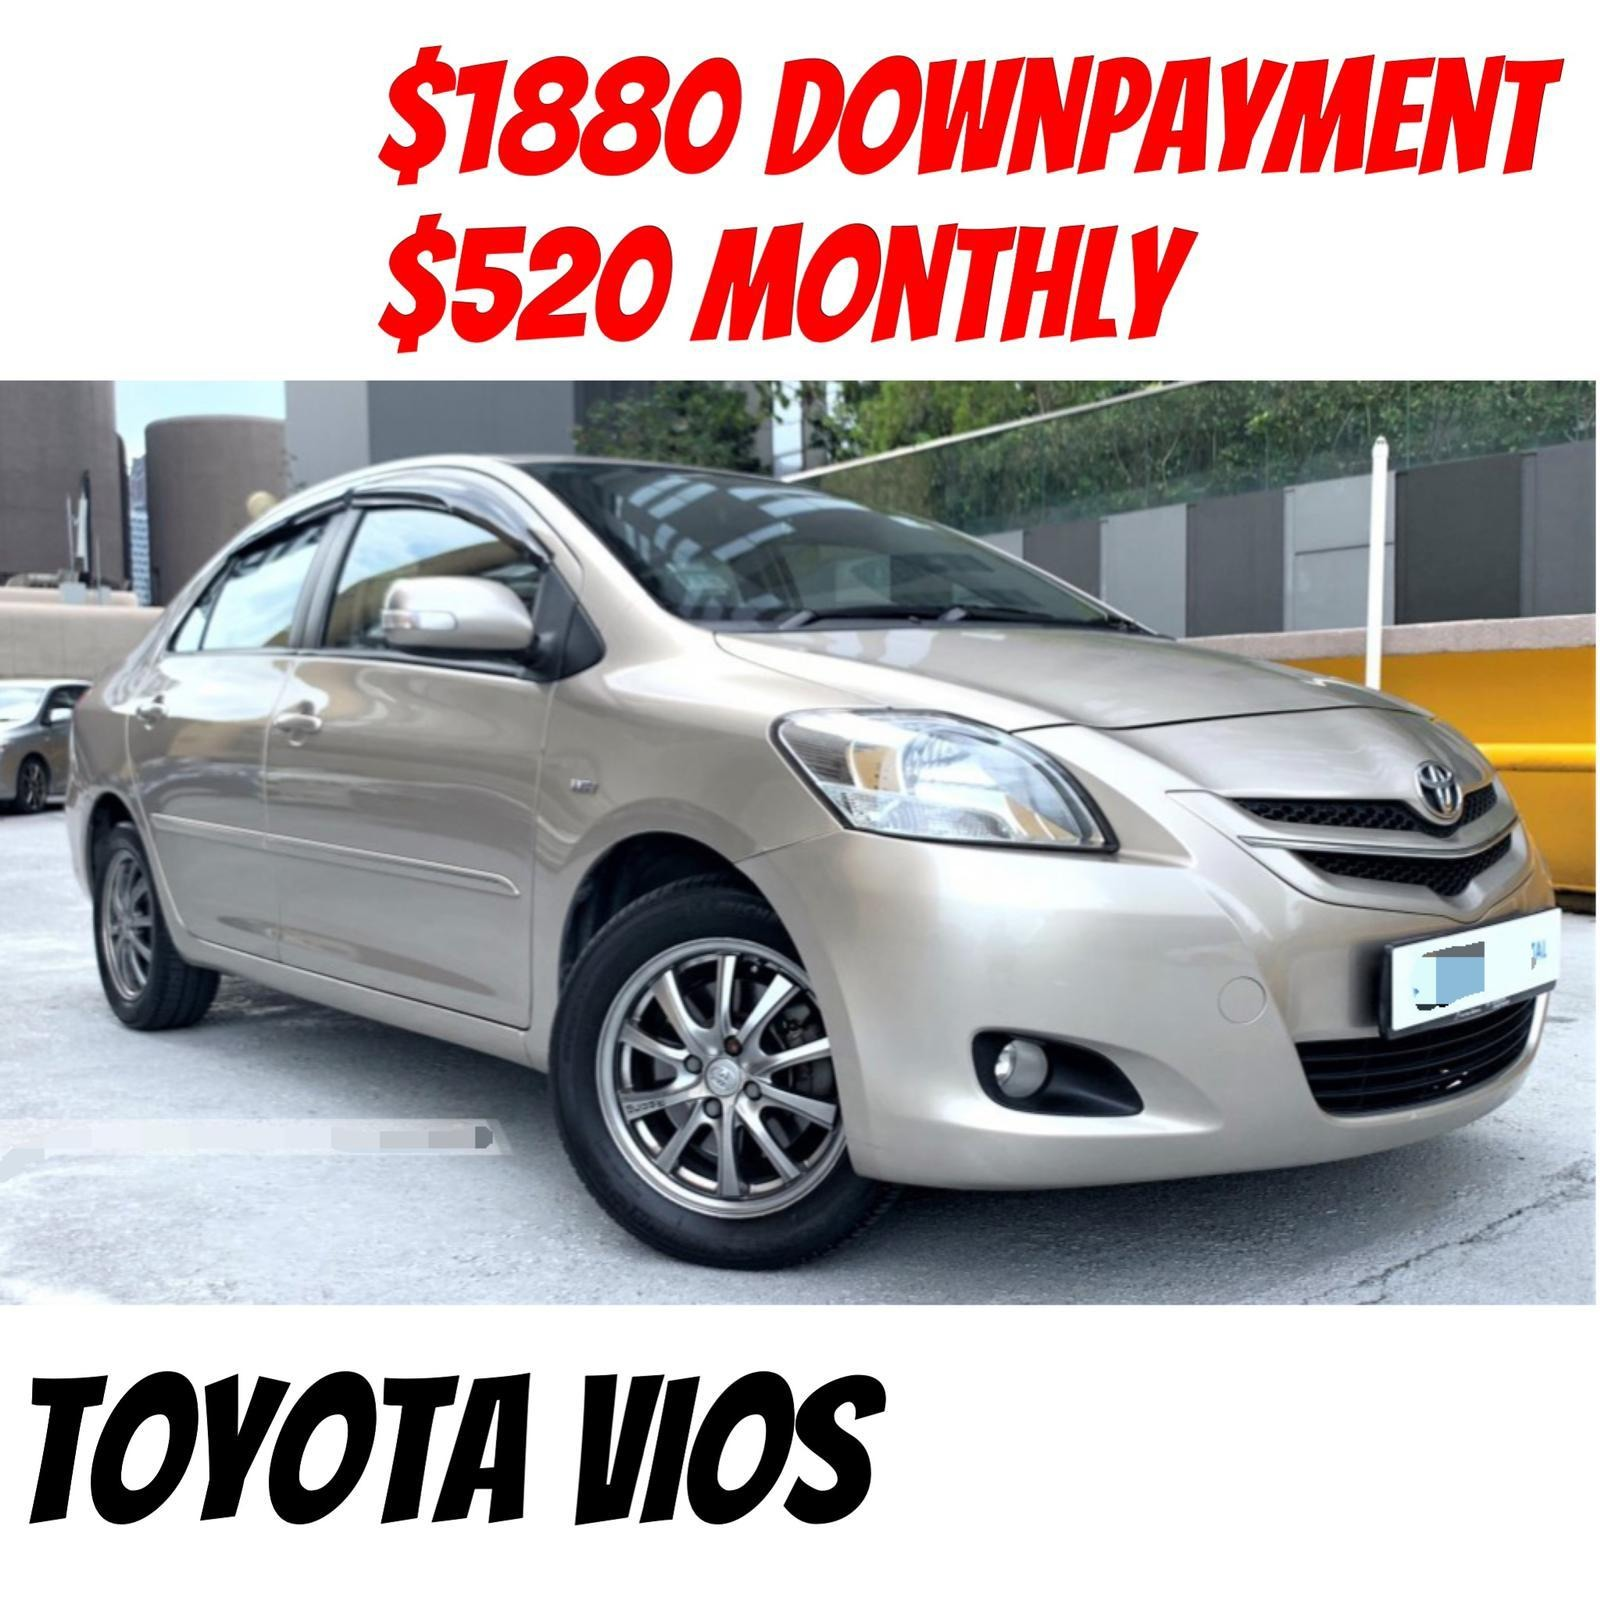 Toyota Vios Only 1880 Downpayment Full Loan Cars Cars For